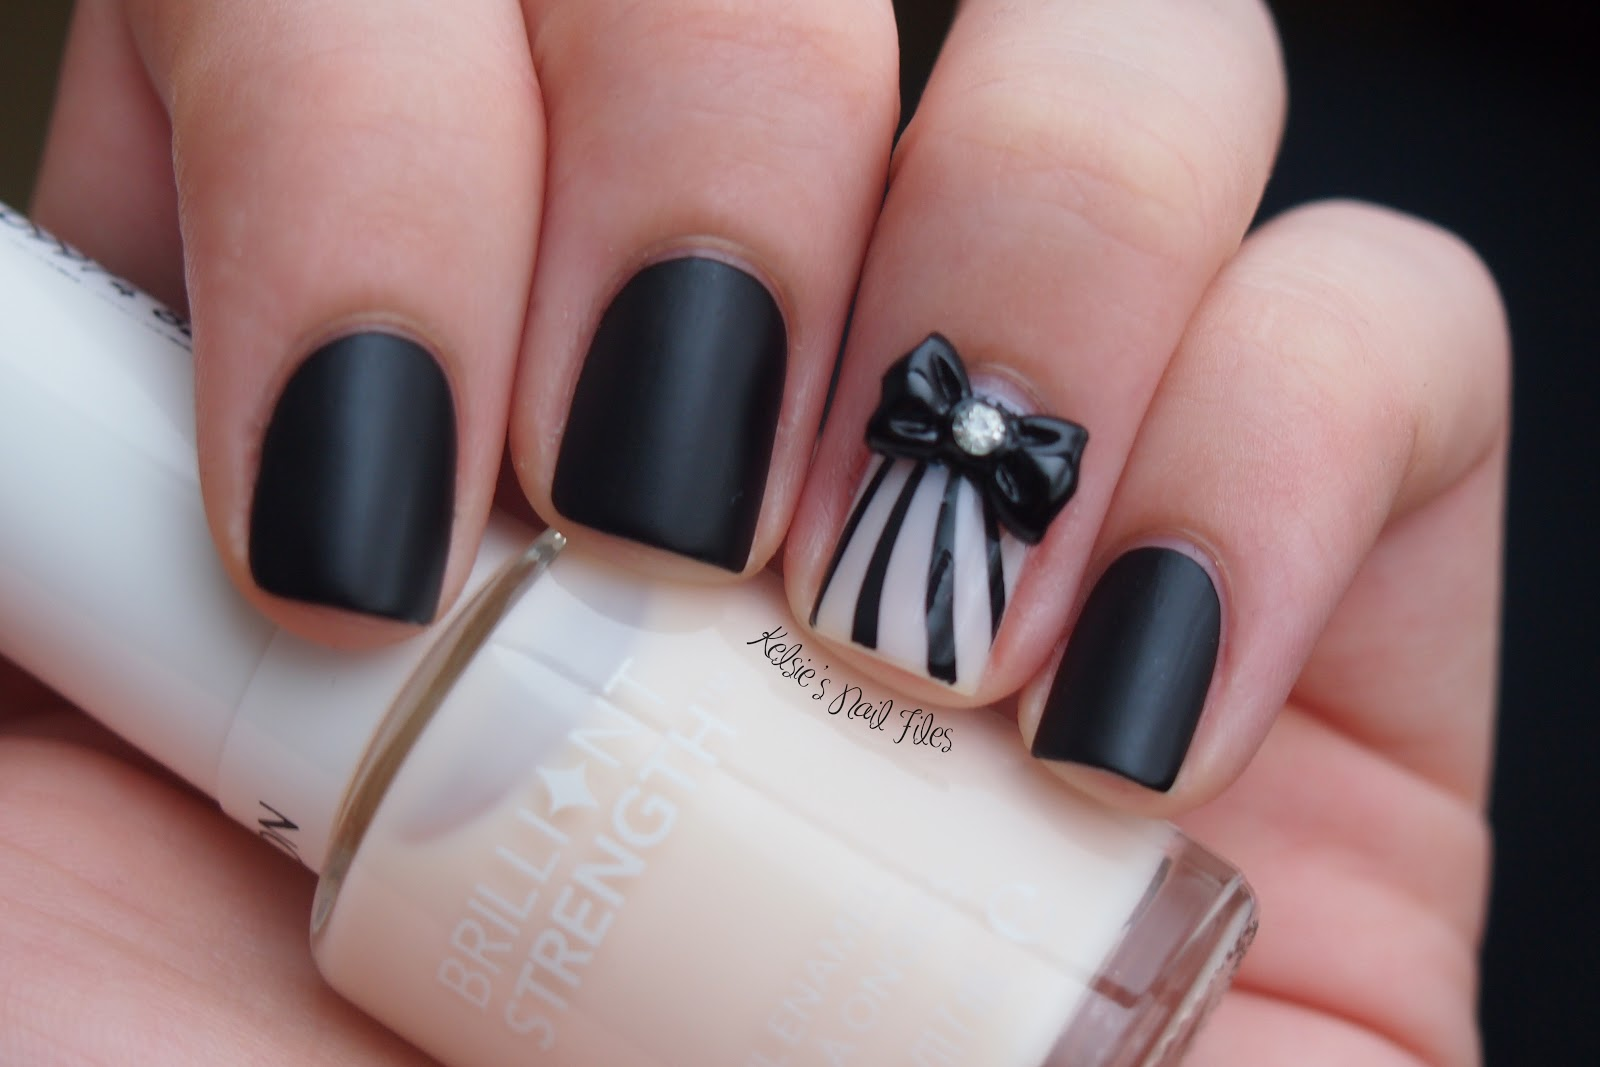 Cute Black Nail Designs with 3D Bows